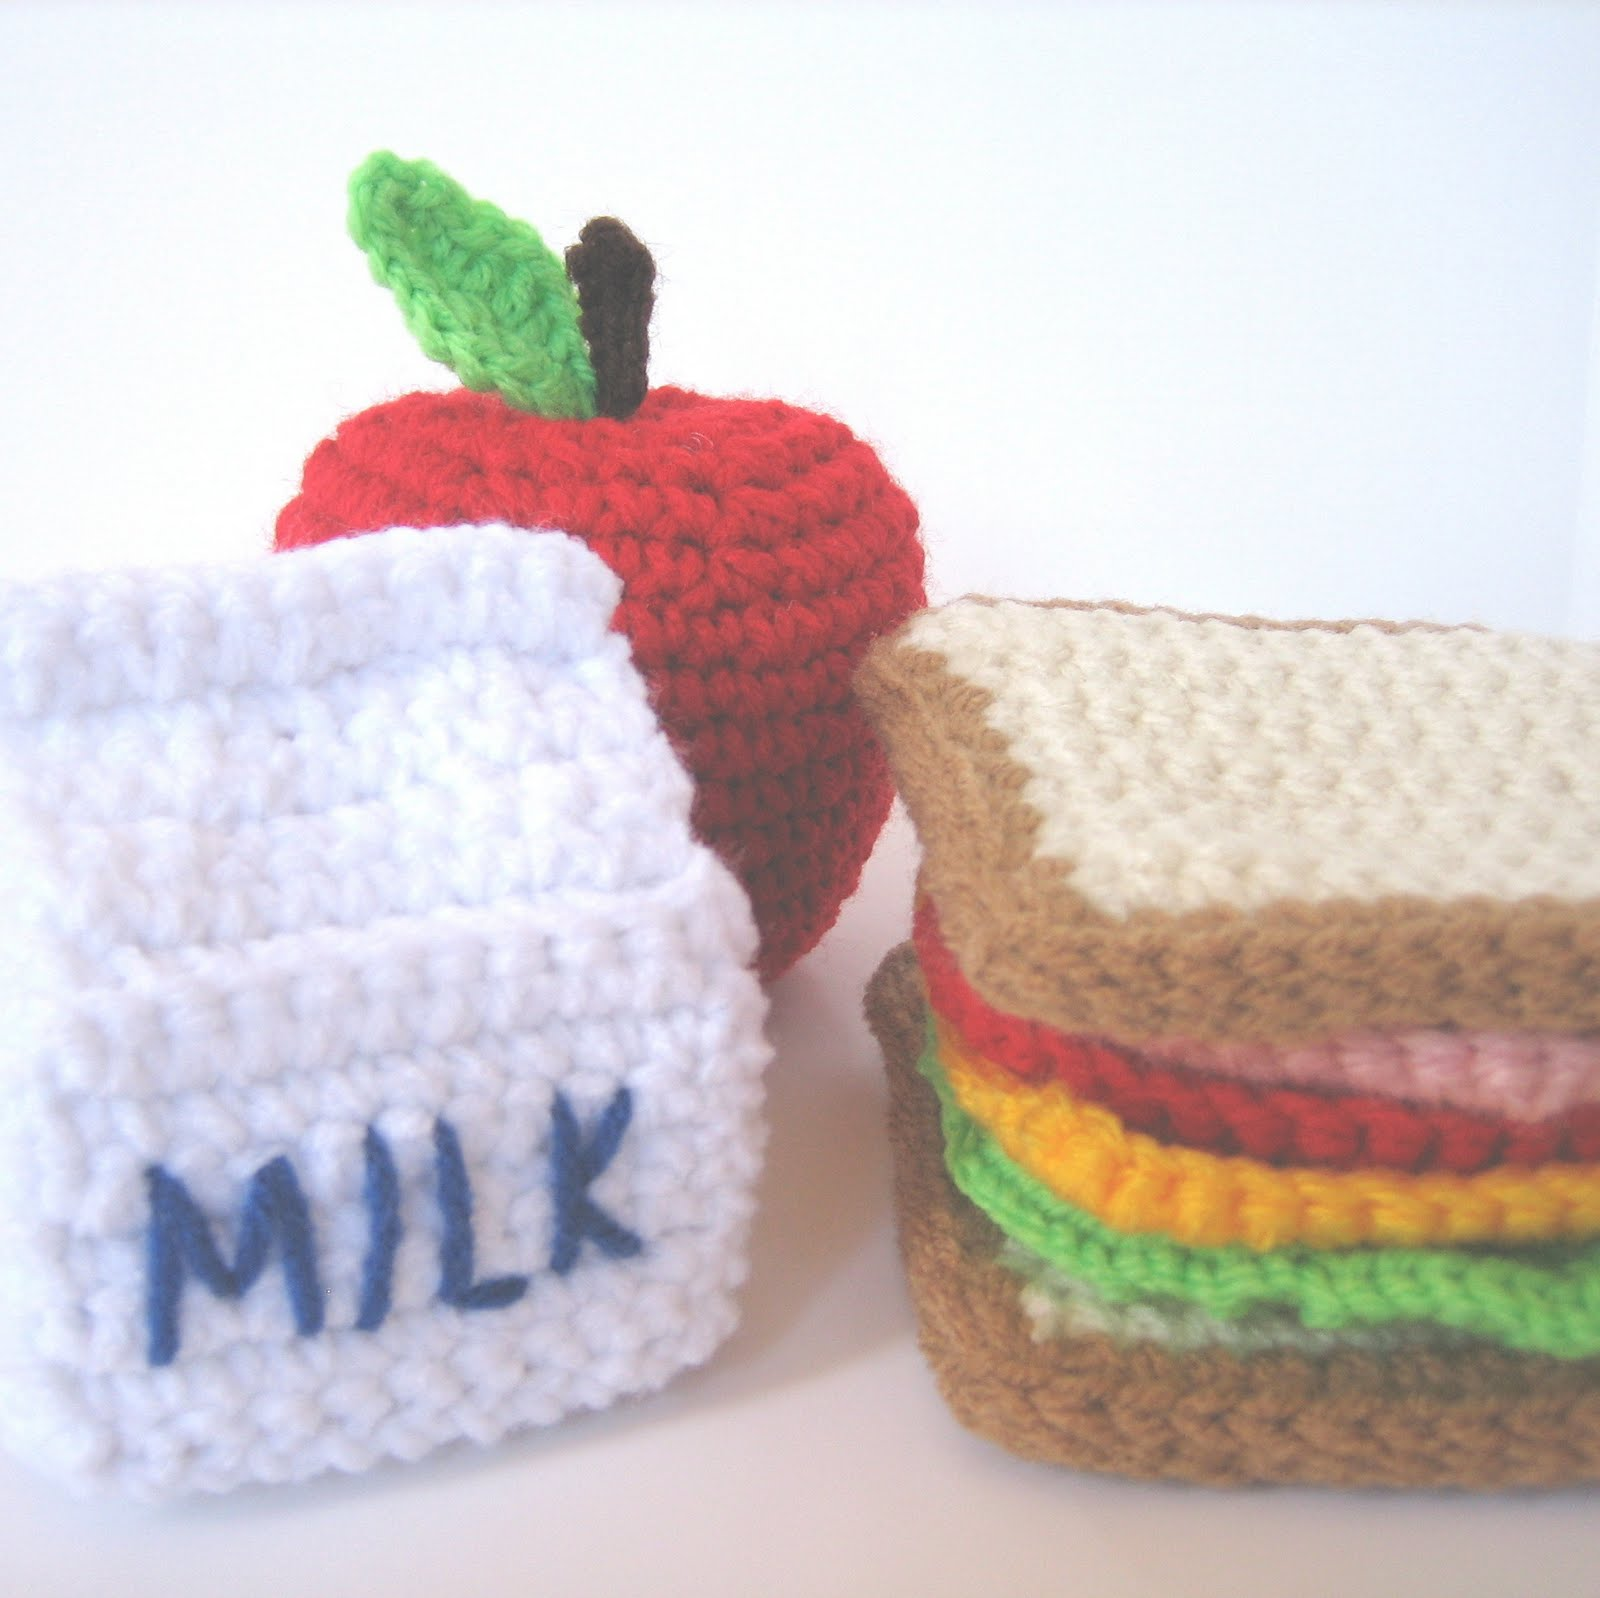 CROCHET N PLAY DESIGNS: Pattern Update: Lunch Play Set